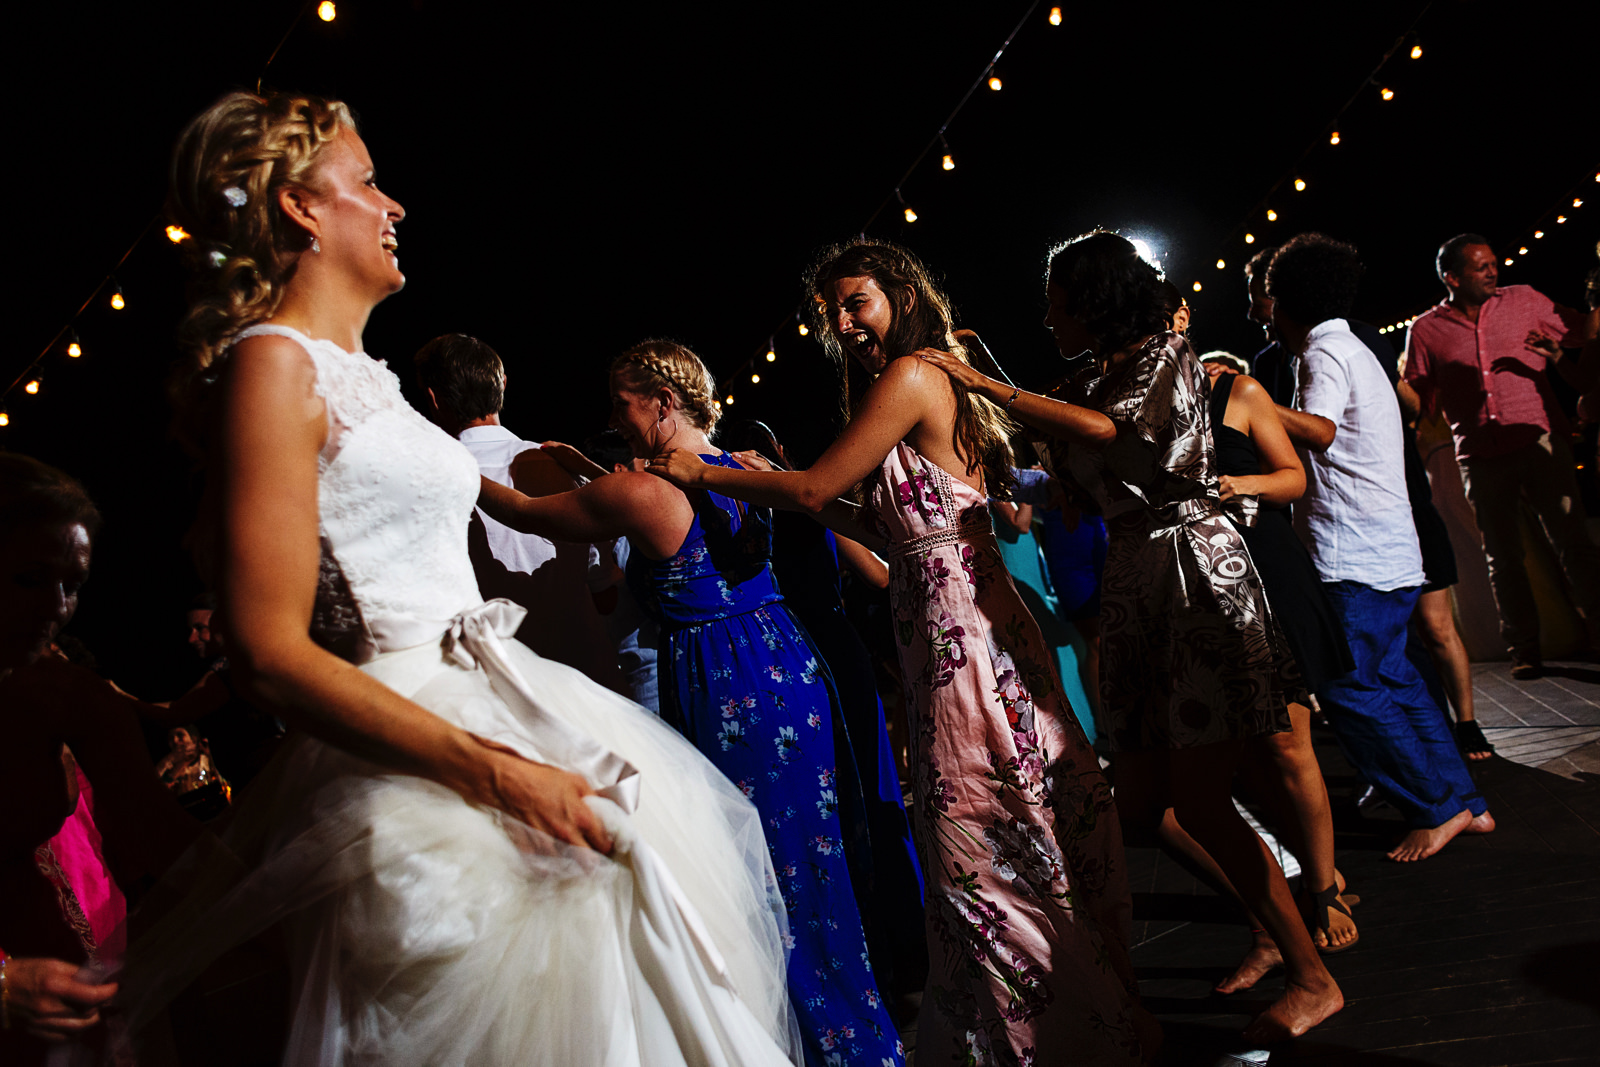 Conga line during the party of the wedding with the bride leading everyone